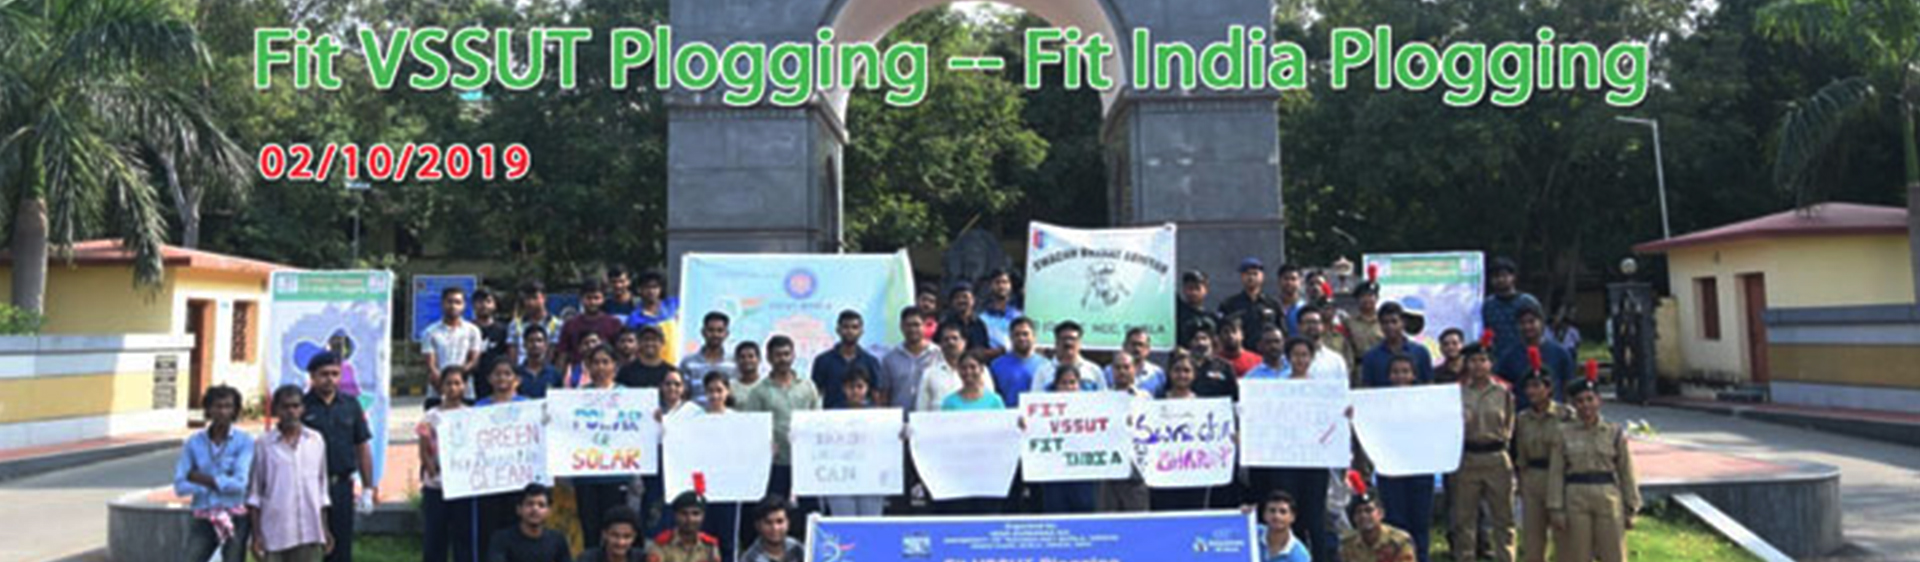 Fit VSSUT Plogging - - Fit India